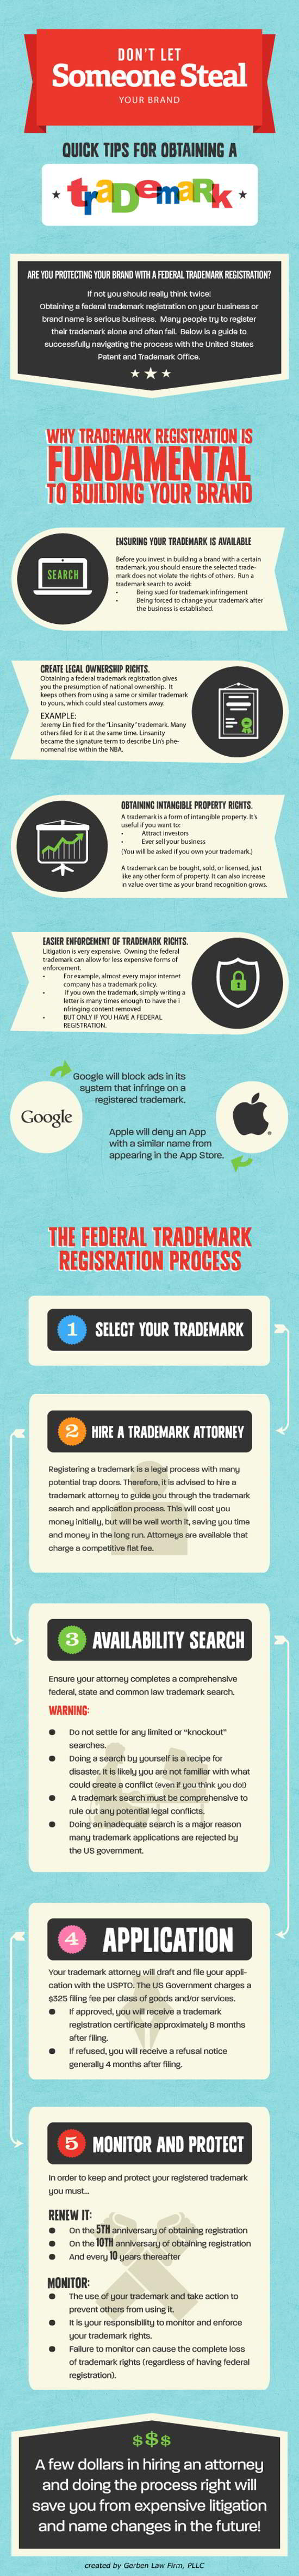 09 Quick Tips for Obtaining a Trademark [infographic]